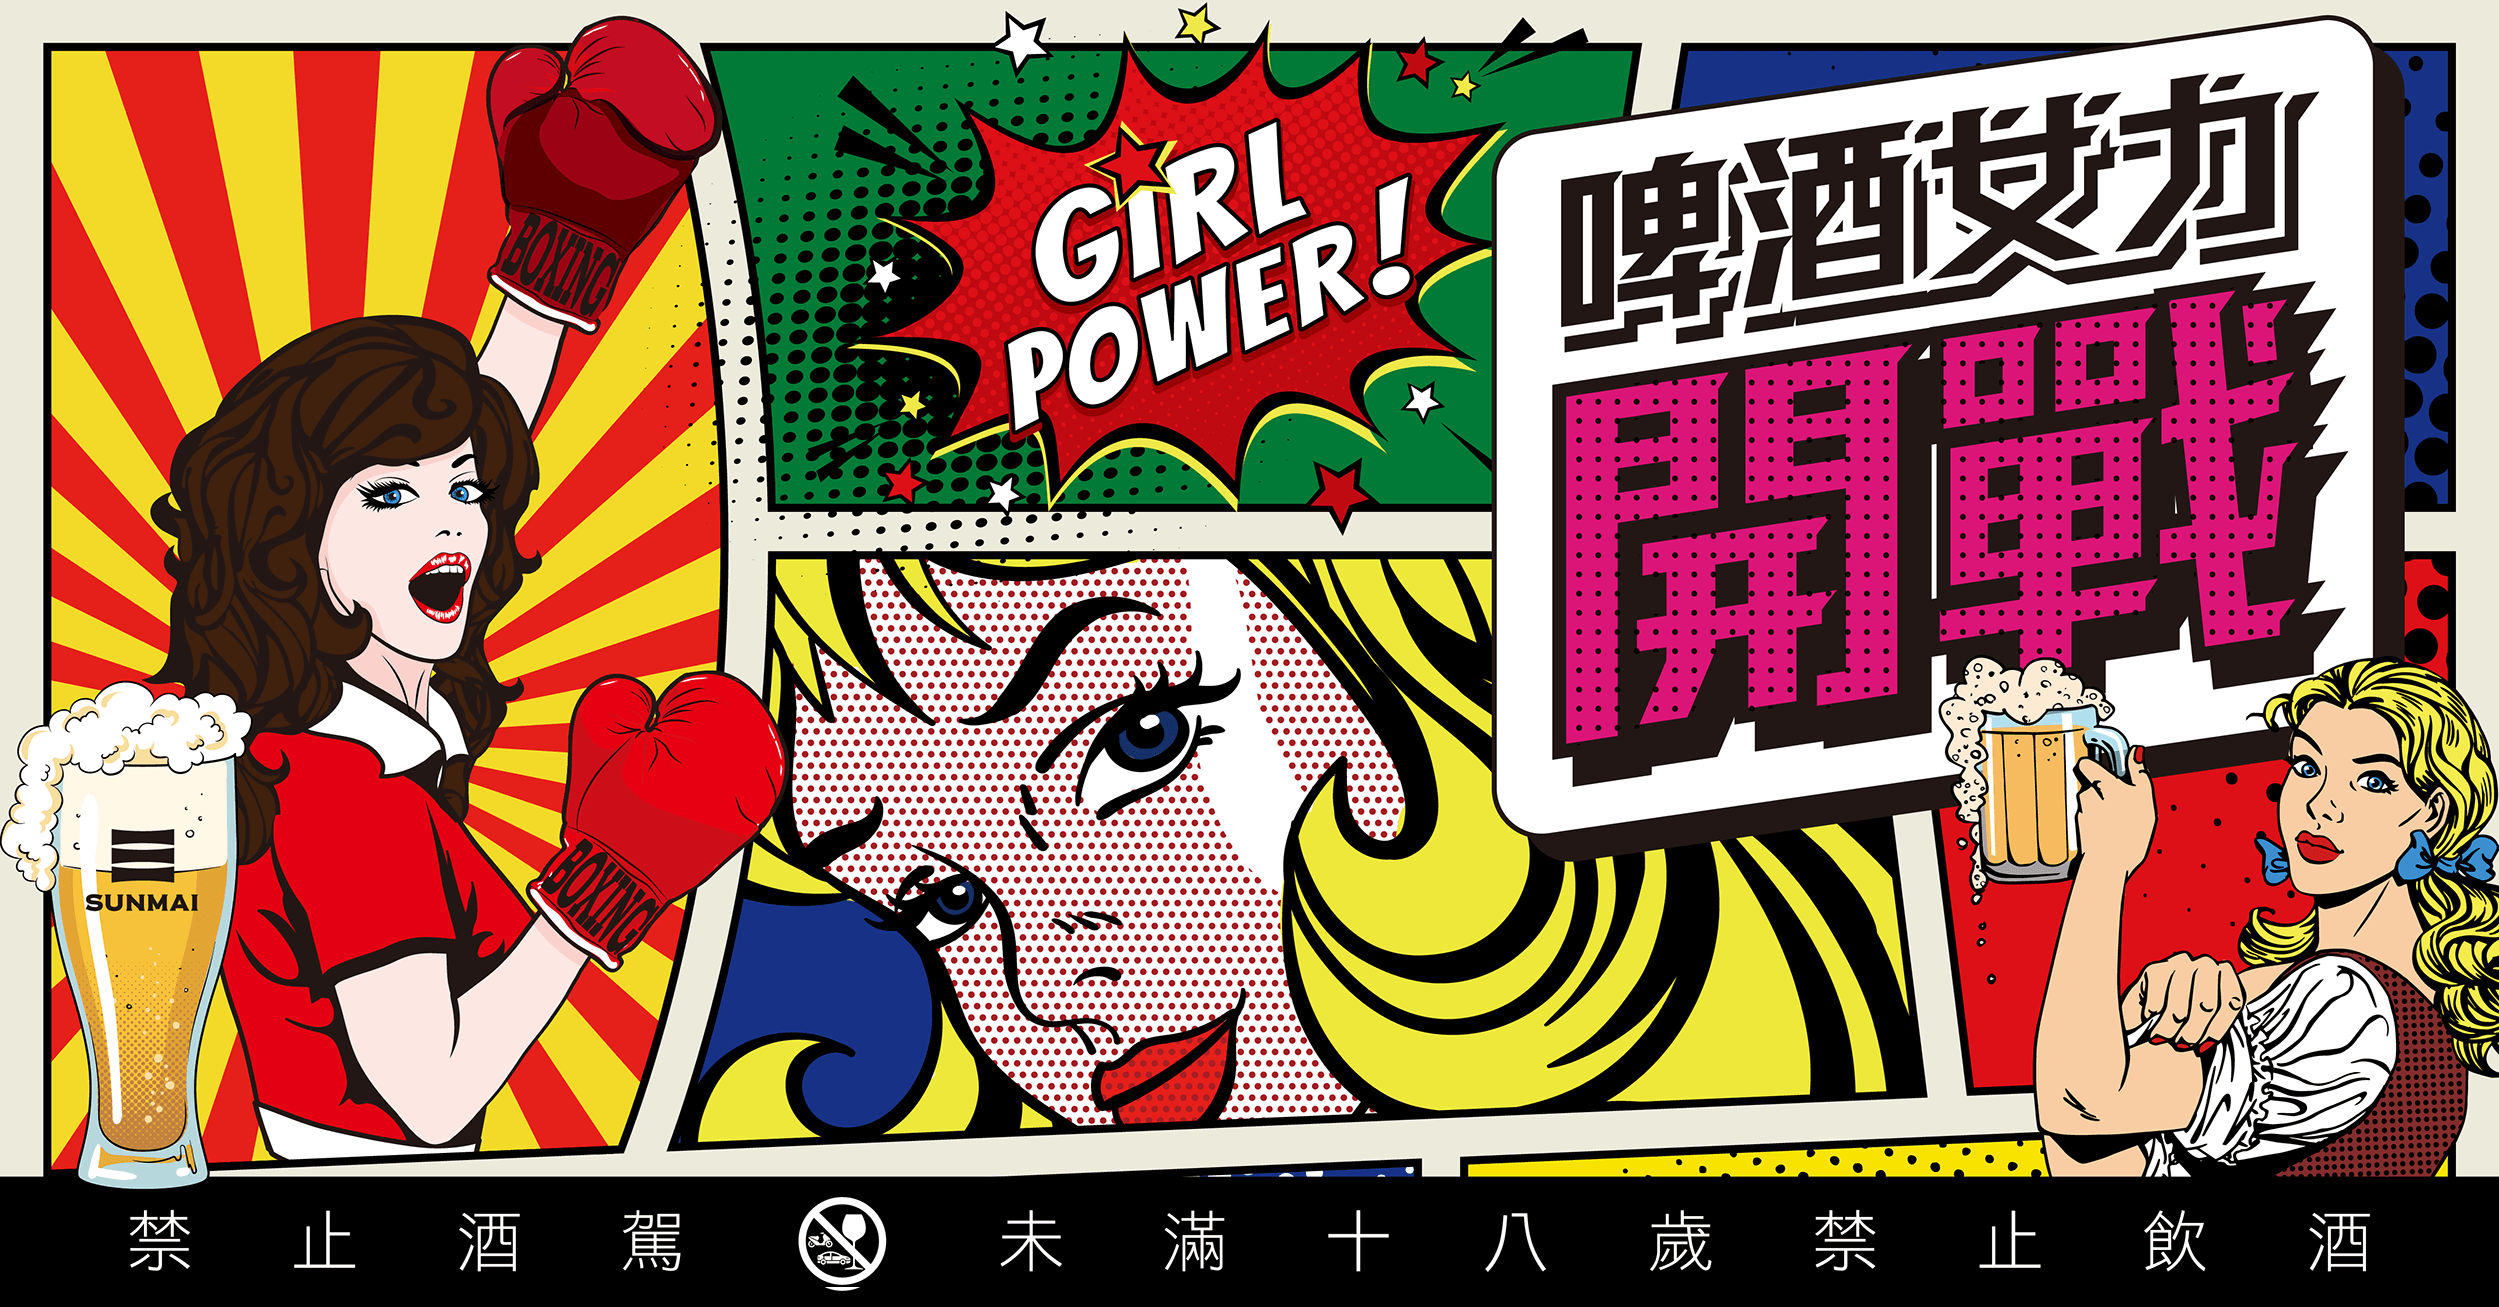 sunmai-bar-girl-power-beer-event-啤酒女力開戰